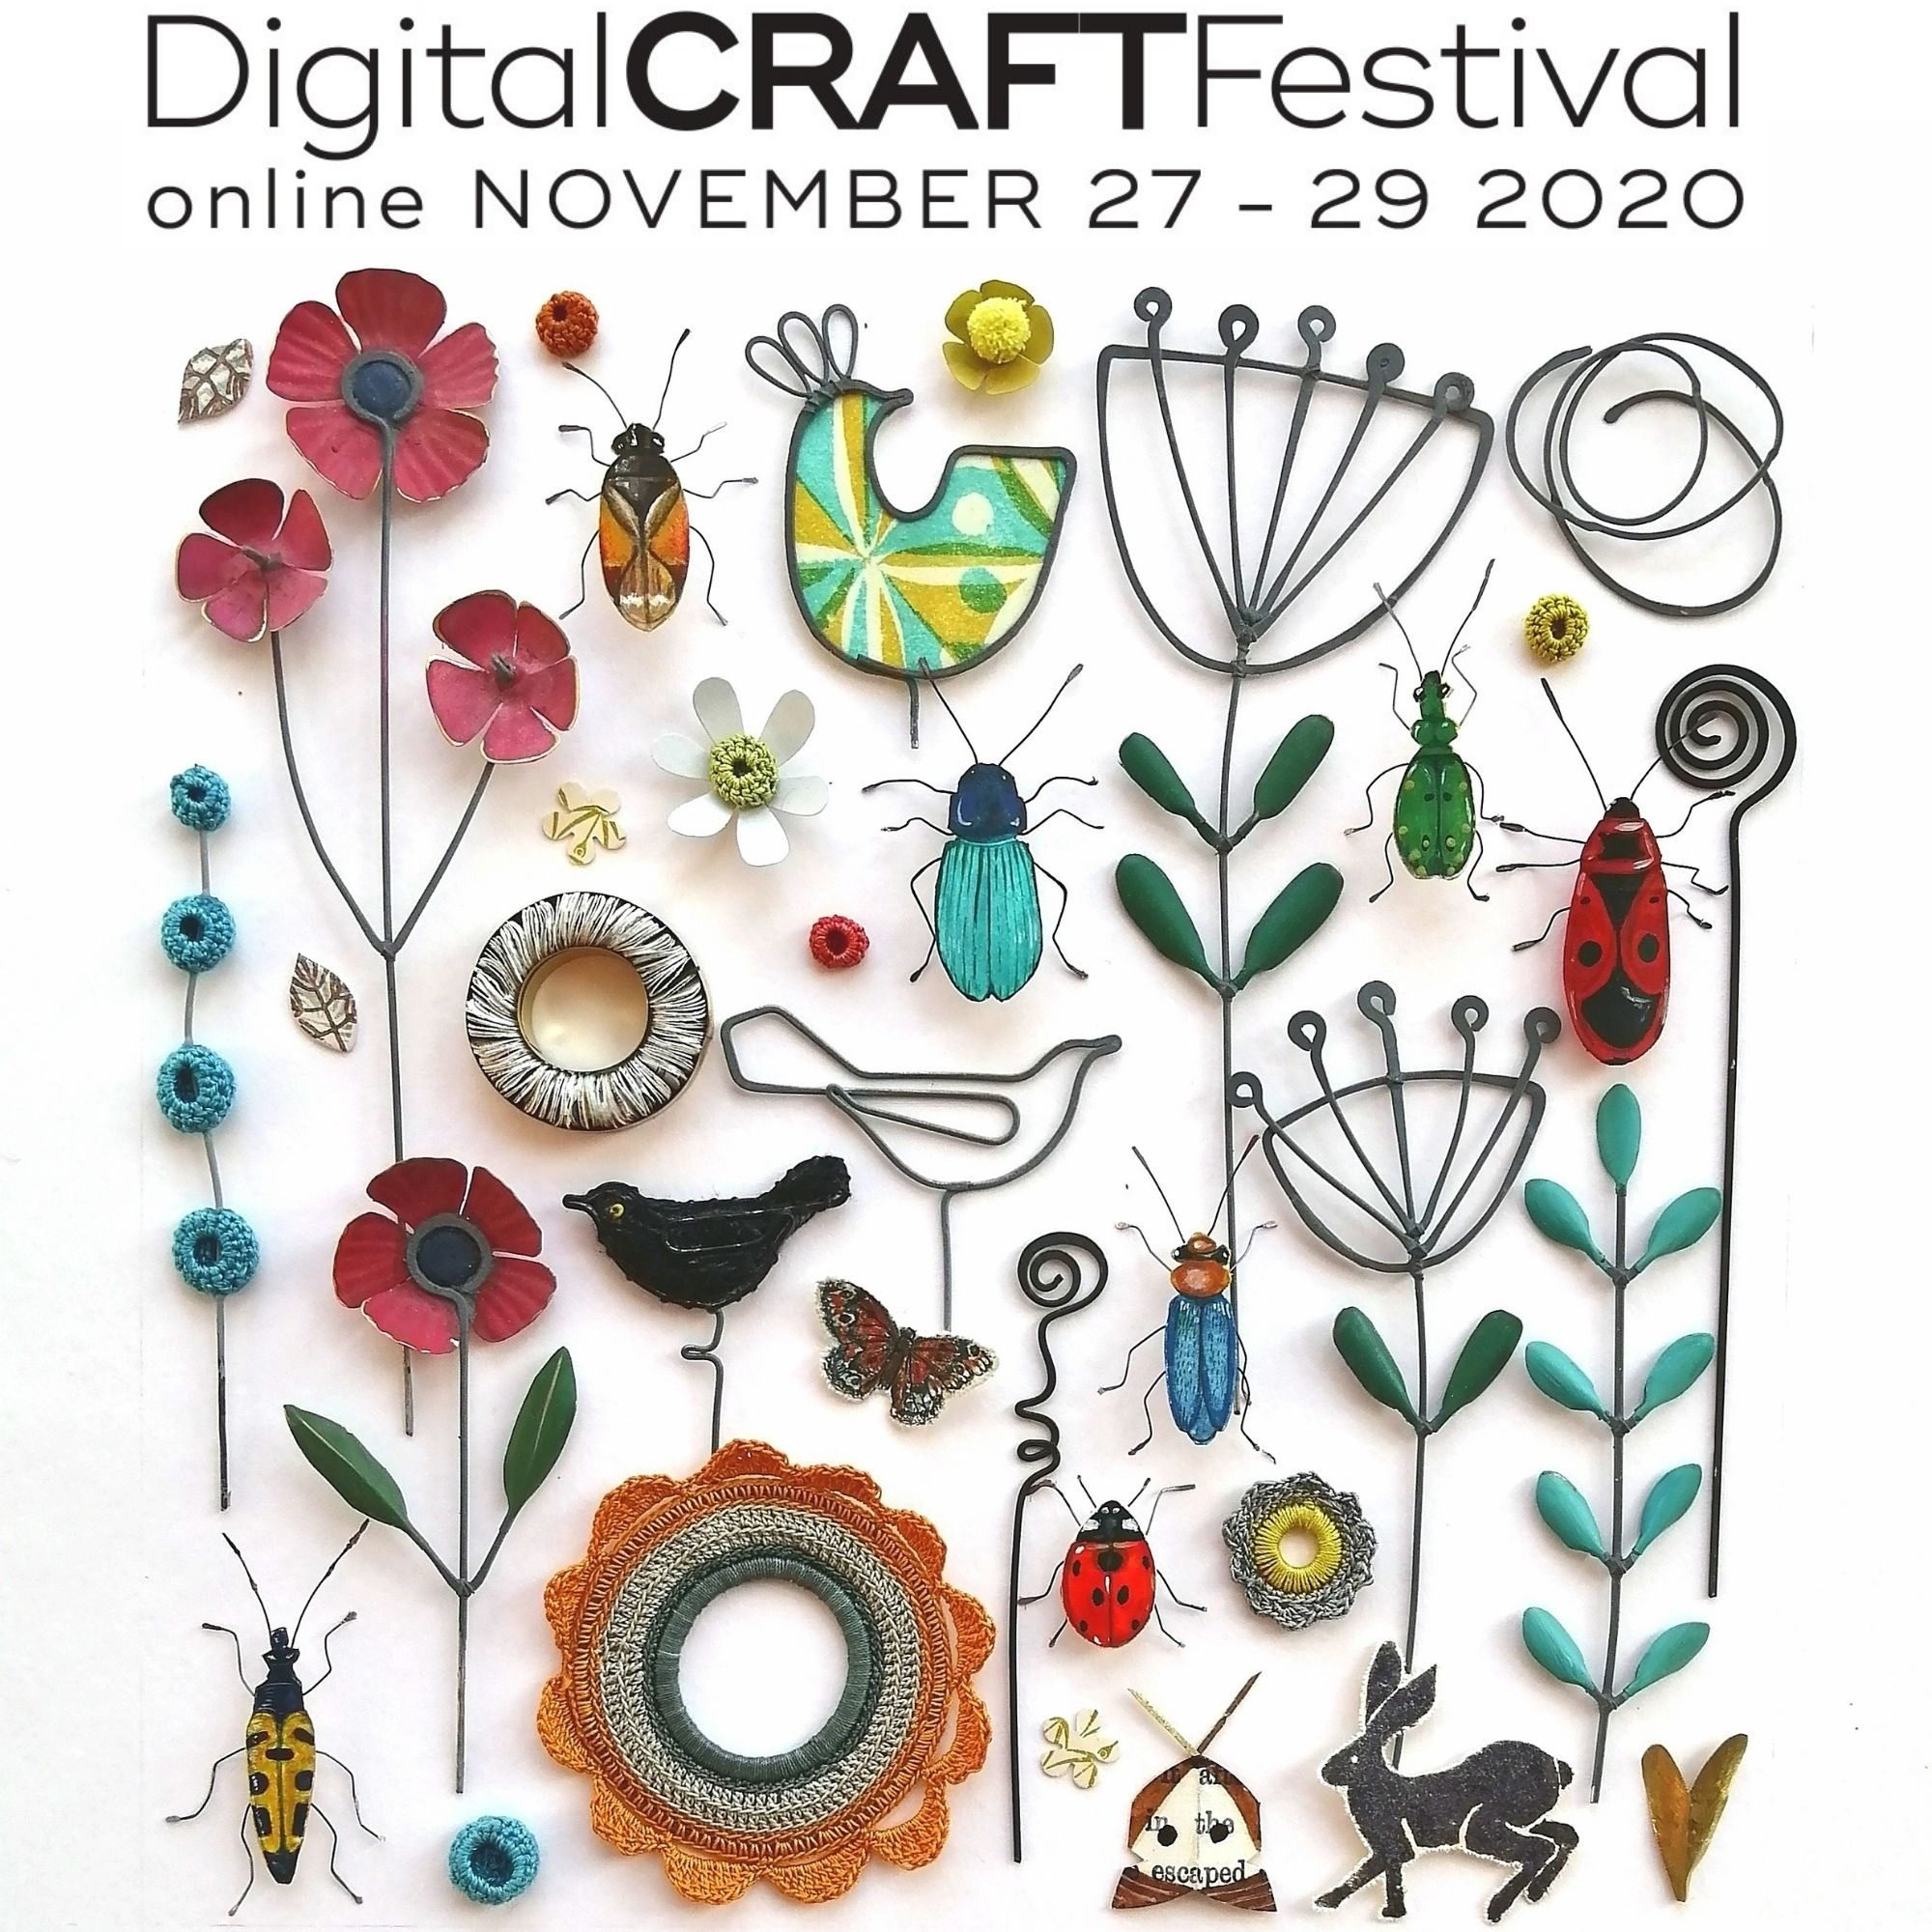 Digital Craft Festival 27 - 29 November 2020